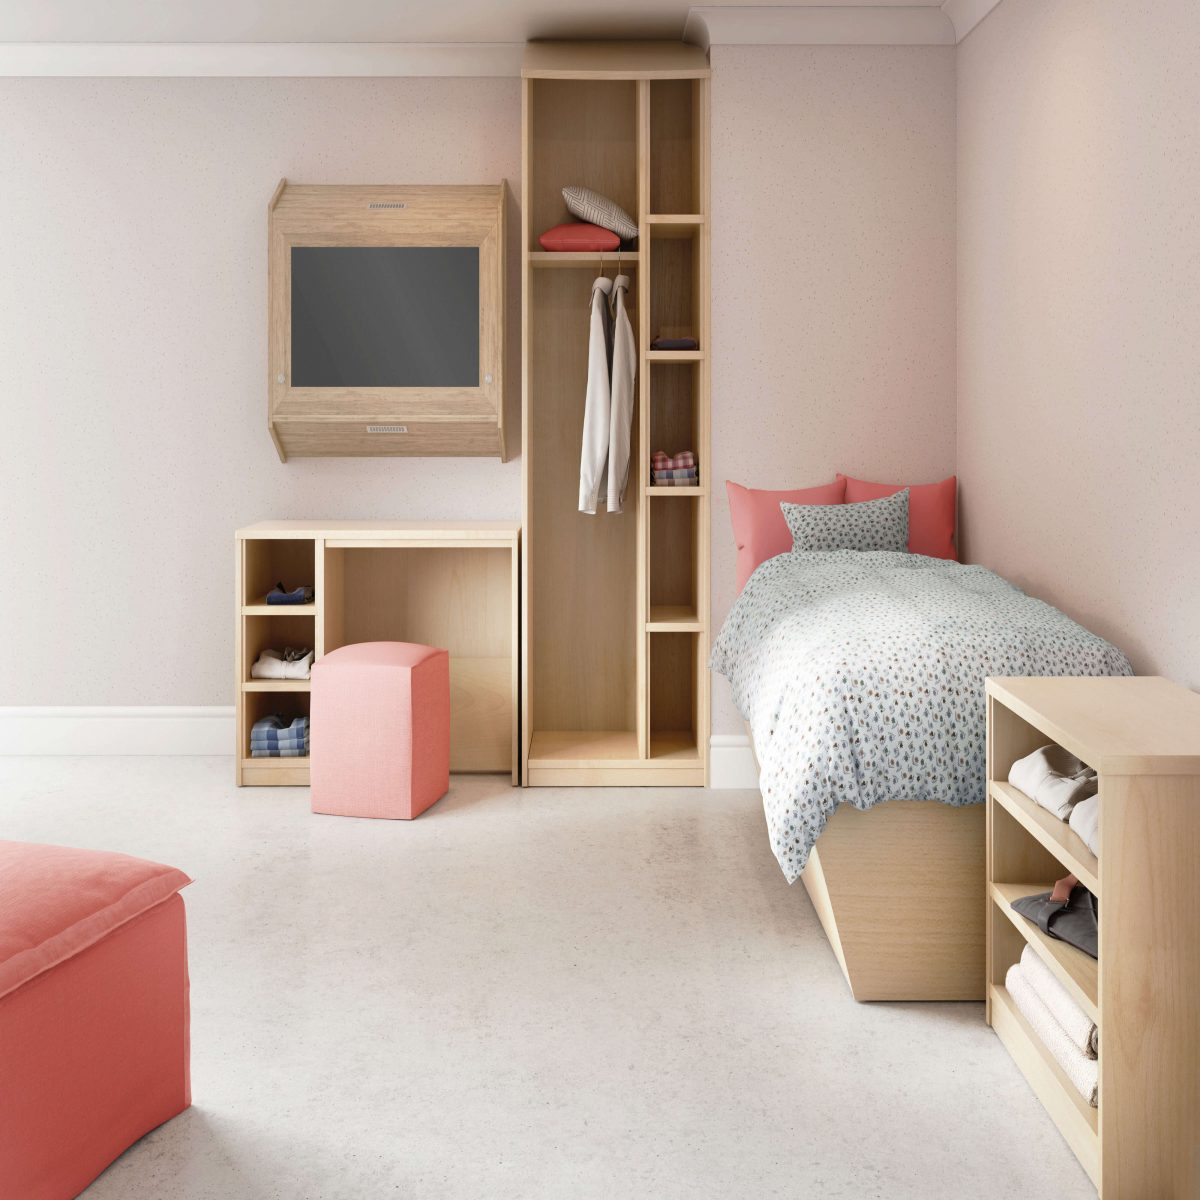 HDU furniture from the Challenging Behaviour Range by Barons.